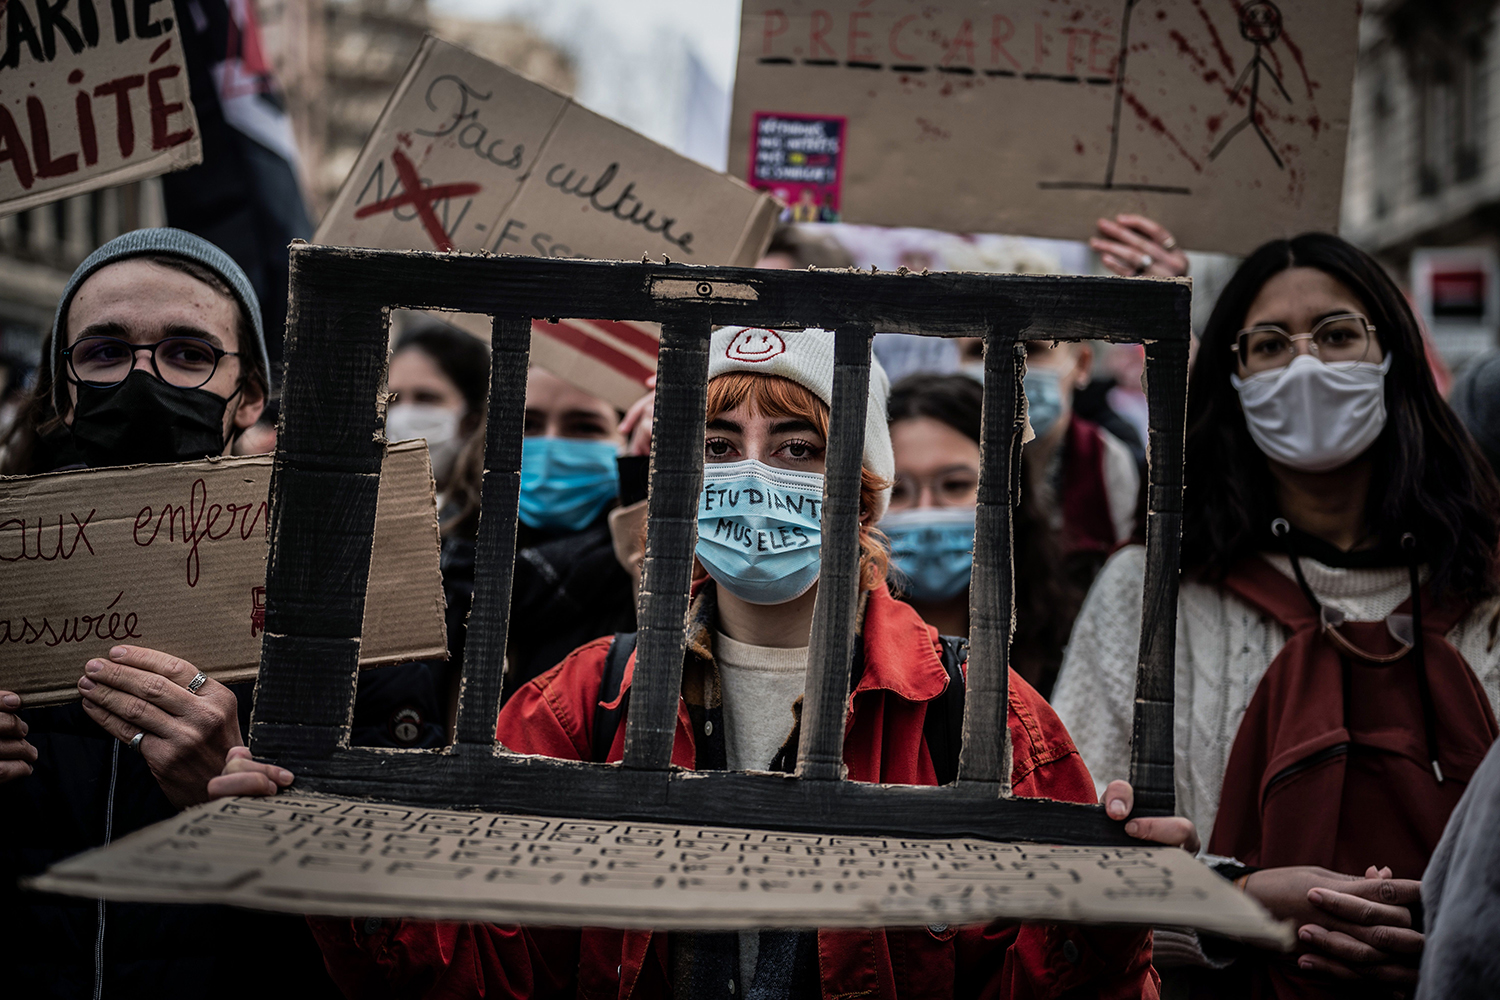 Students demonstrate during a nationwide strike over teacher salaries and the government's handling of the pandemic in Lyon, France, on Jan. 26. JEFF PACHOUD/AFP via Getty Images